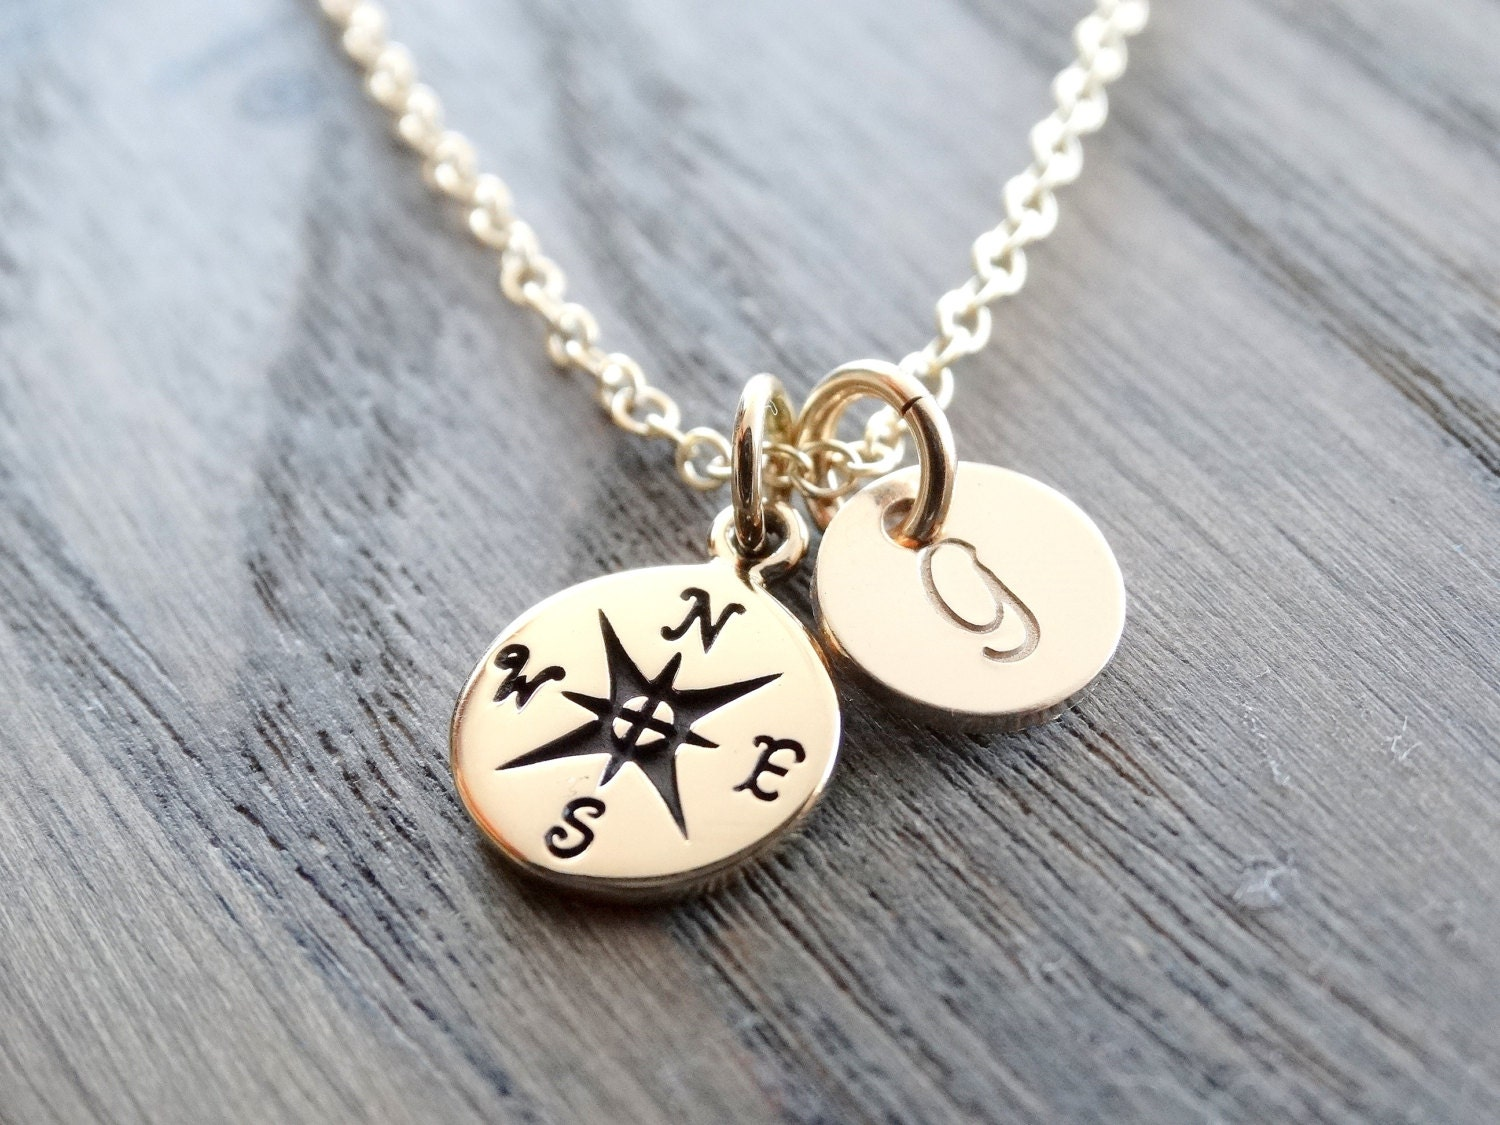 gift literary all products necklace not wander who of lord lotr rings compass the emporium jrr